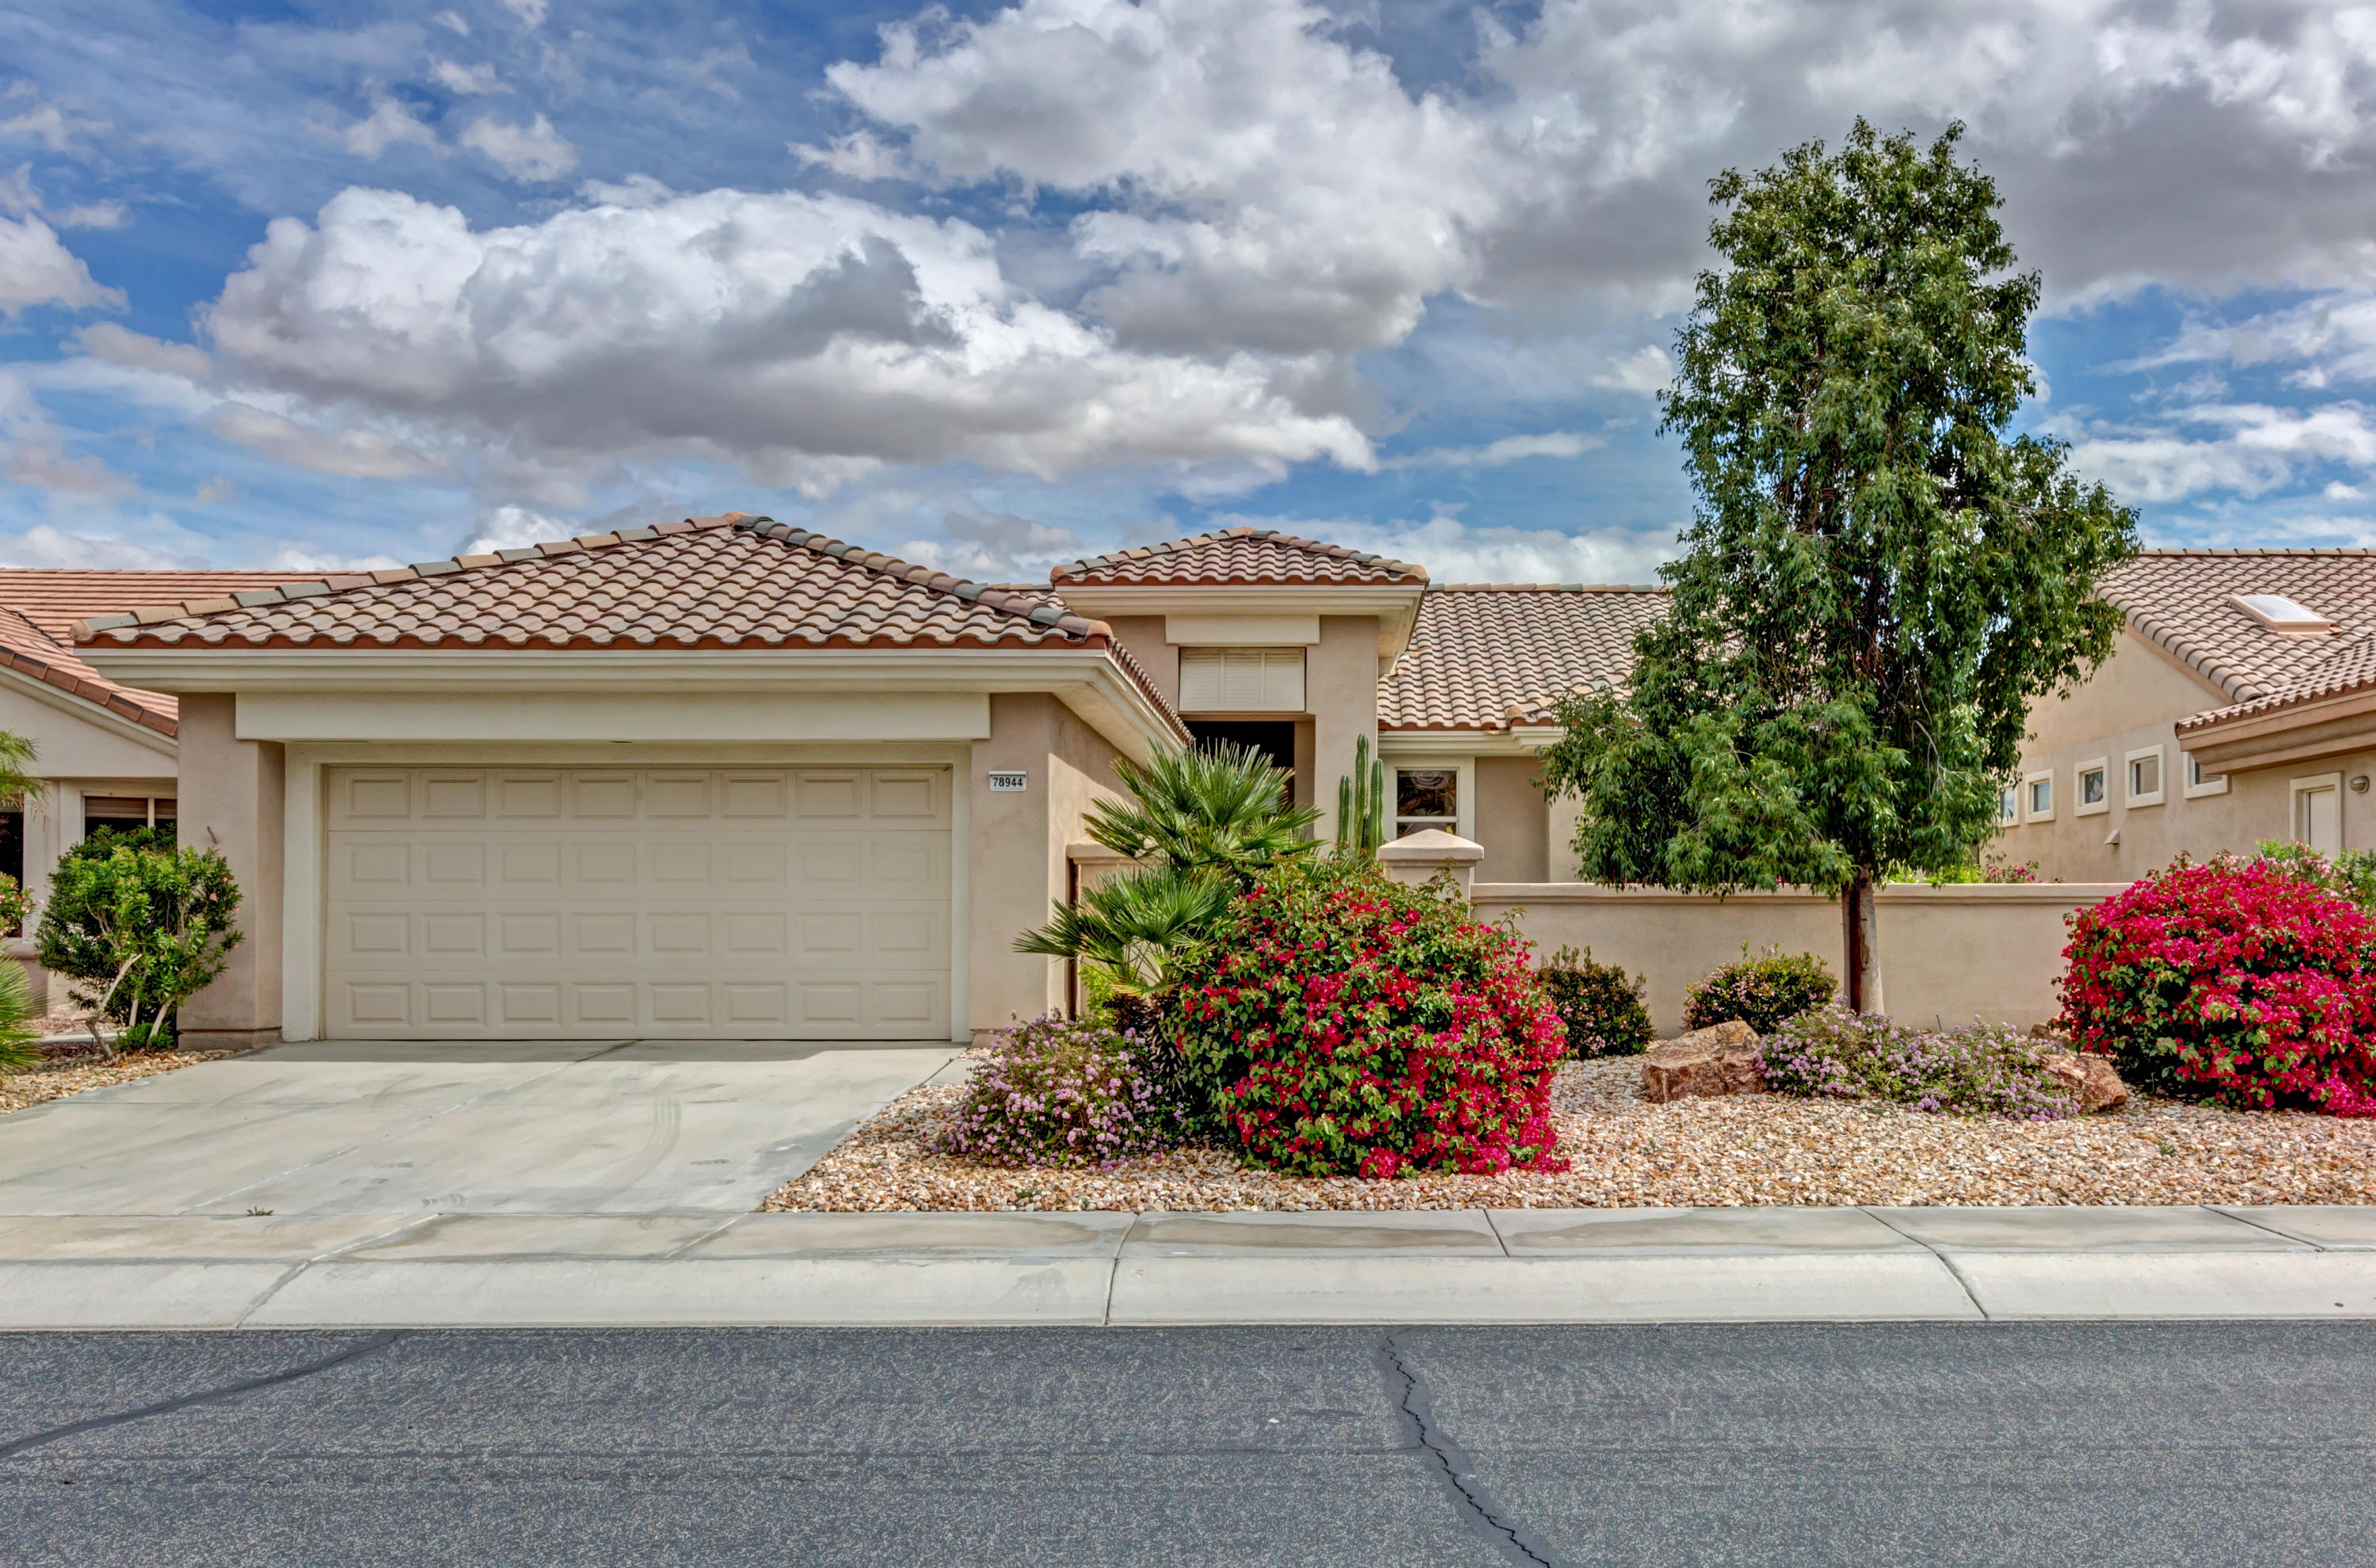 Photo of 78944 Links Drive, Palm Desert, CA 92211